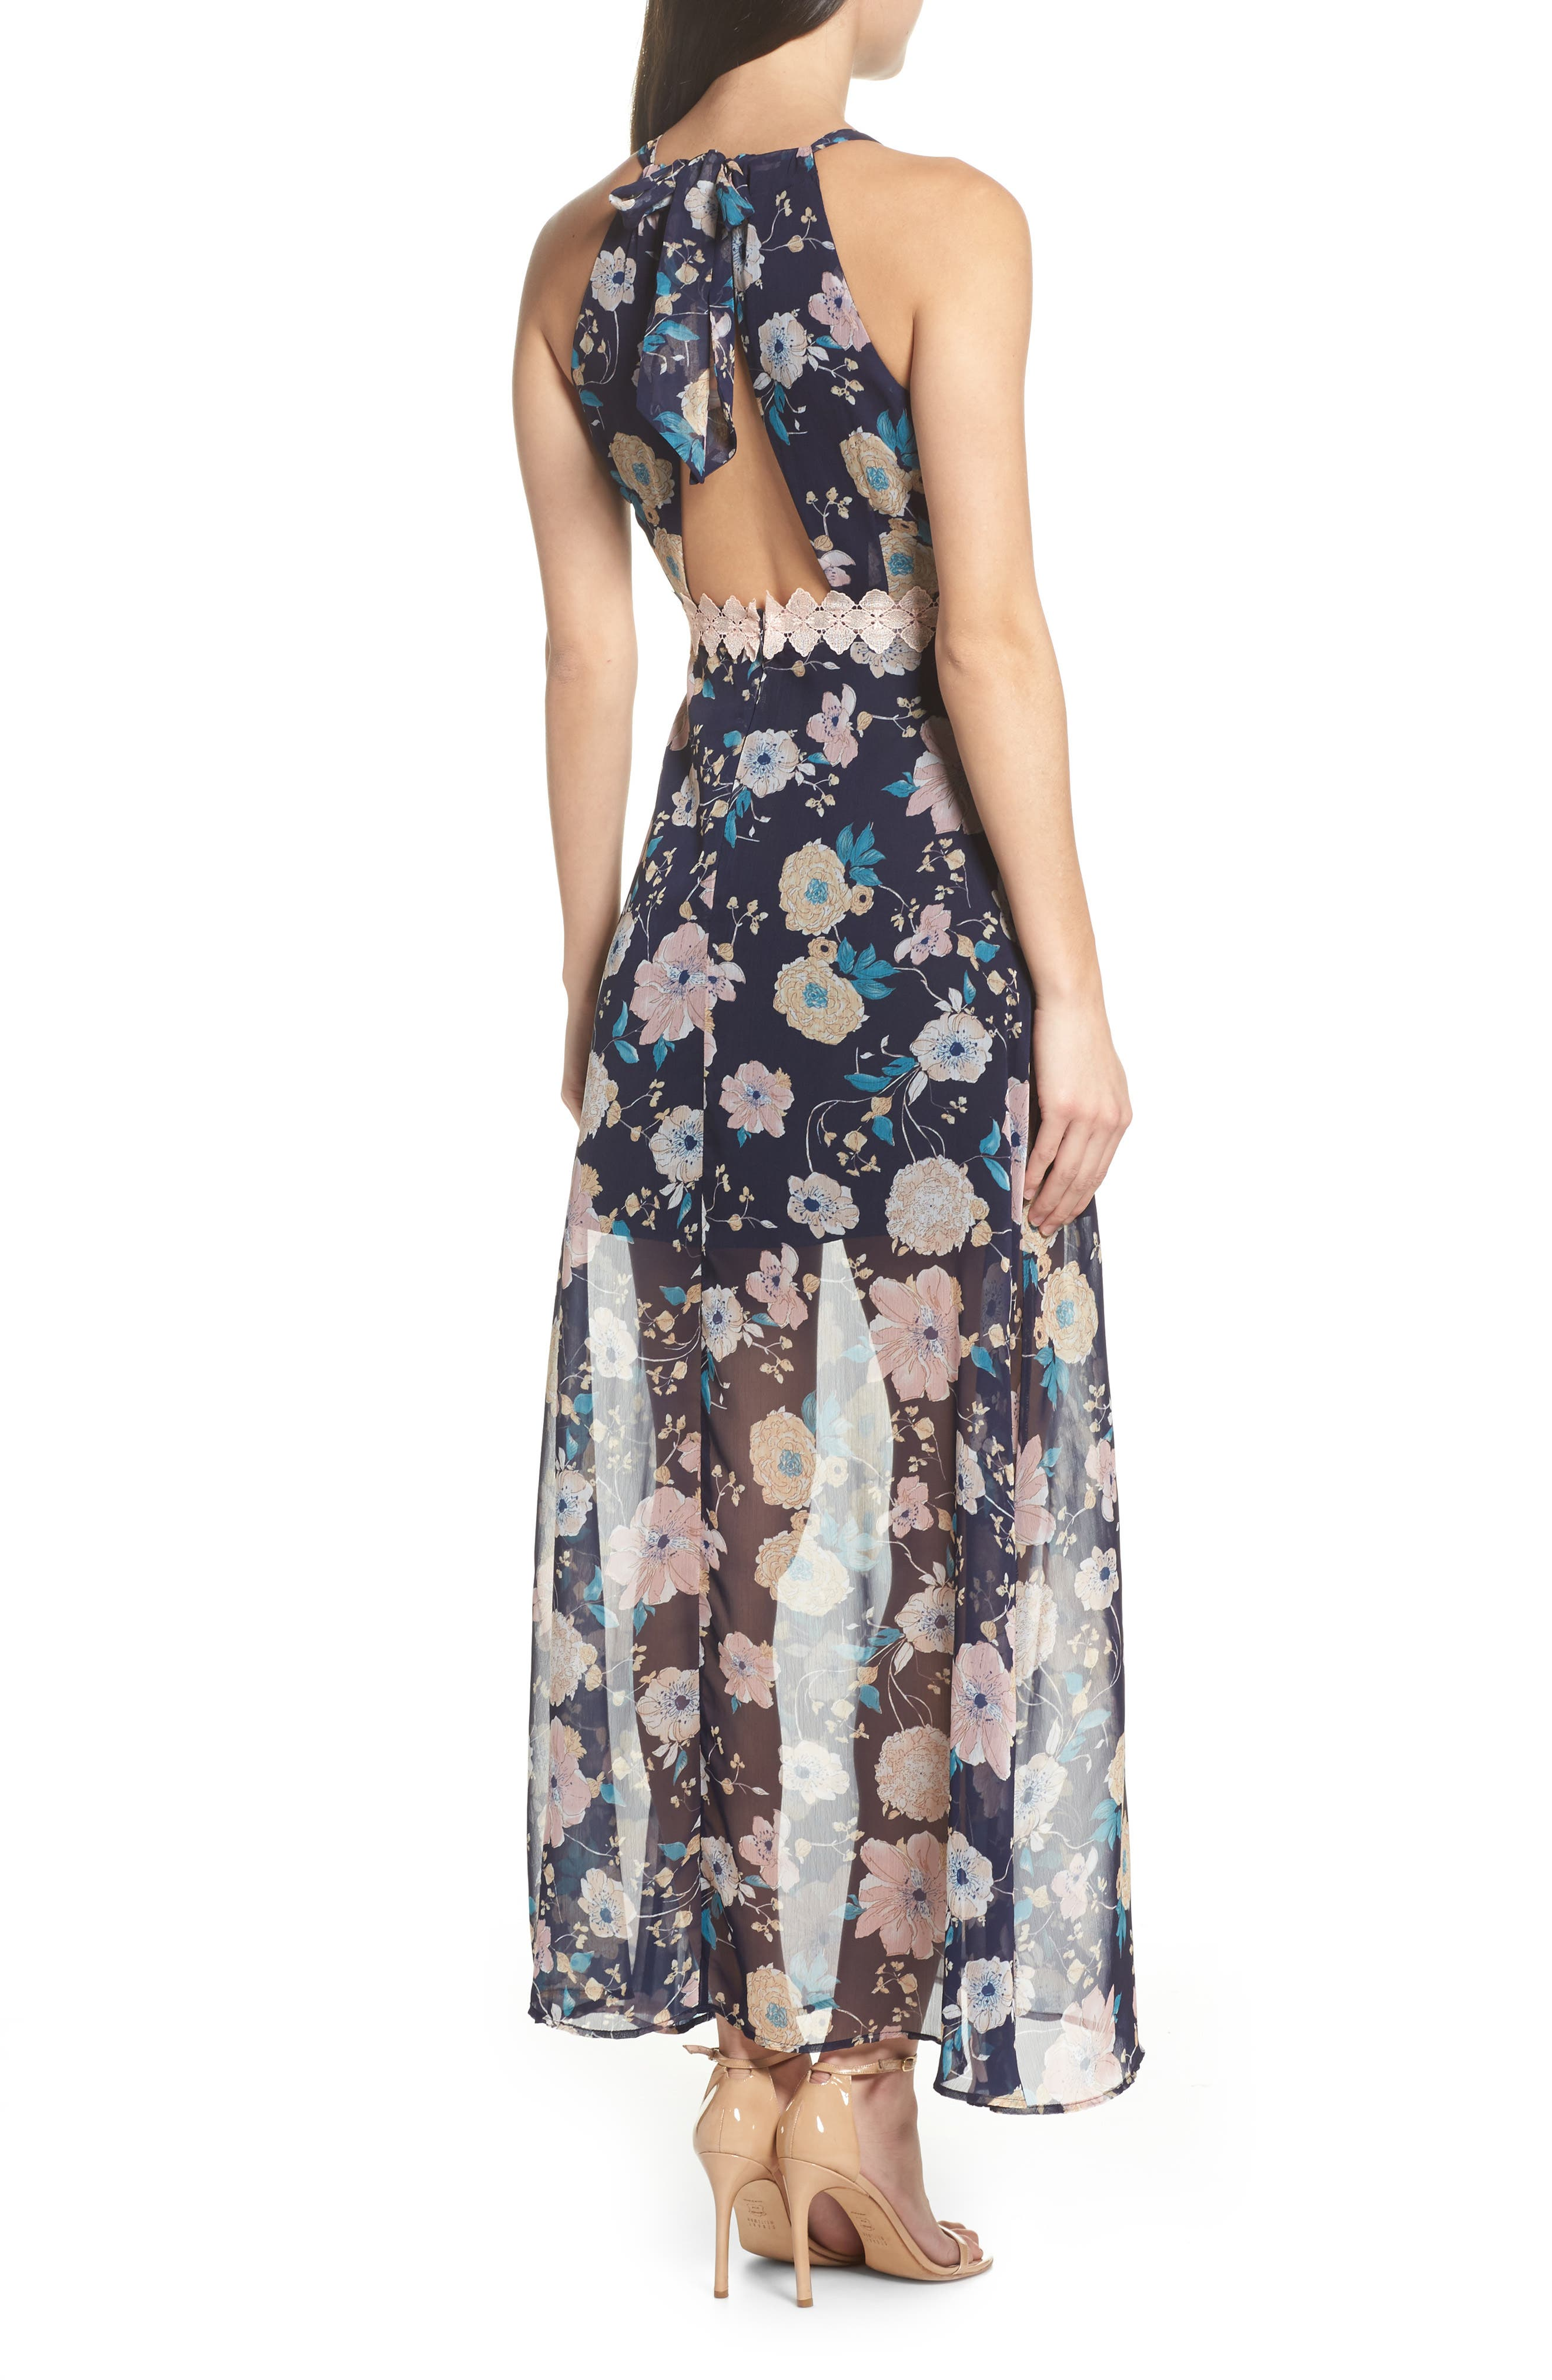 Brylee Floral Print Maxi Dress,                             Alternate thumbnail 2, color,                             Brylee Navy Multi